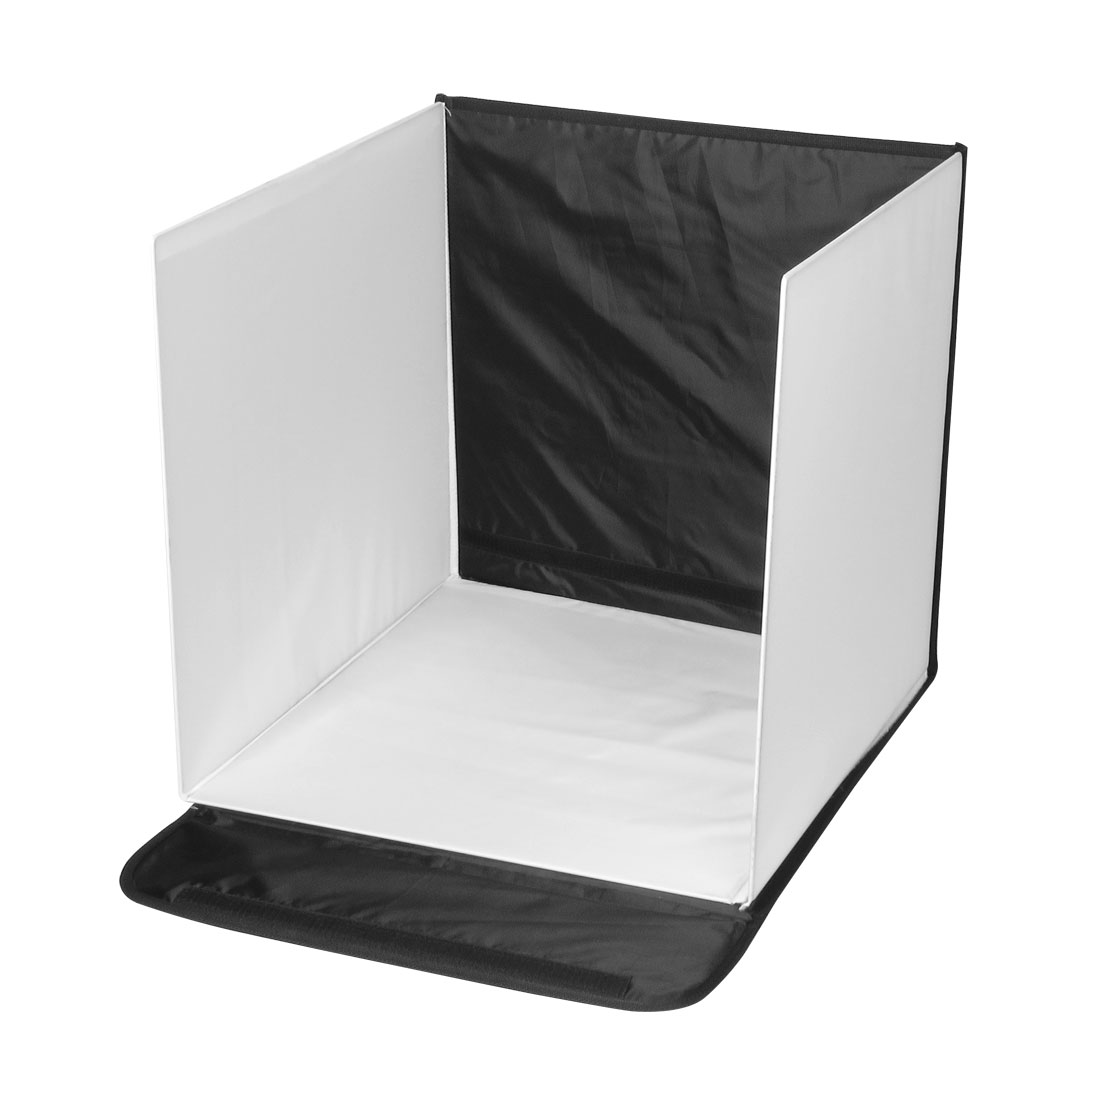 "Photography Studio Lamp Light Tent 19.6""x19.6""x19.6"" + 4 Pcs Backdrop"